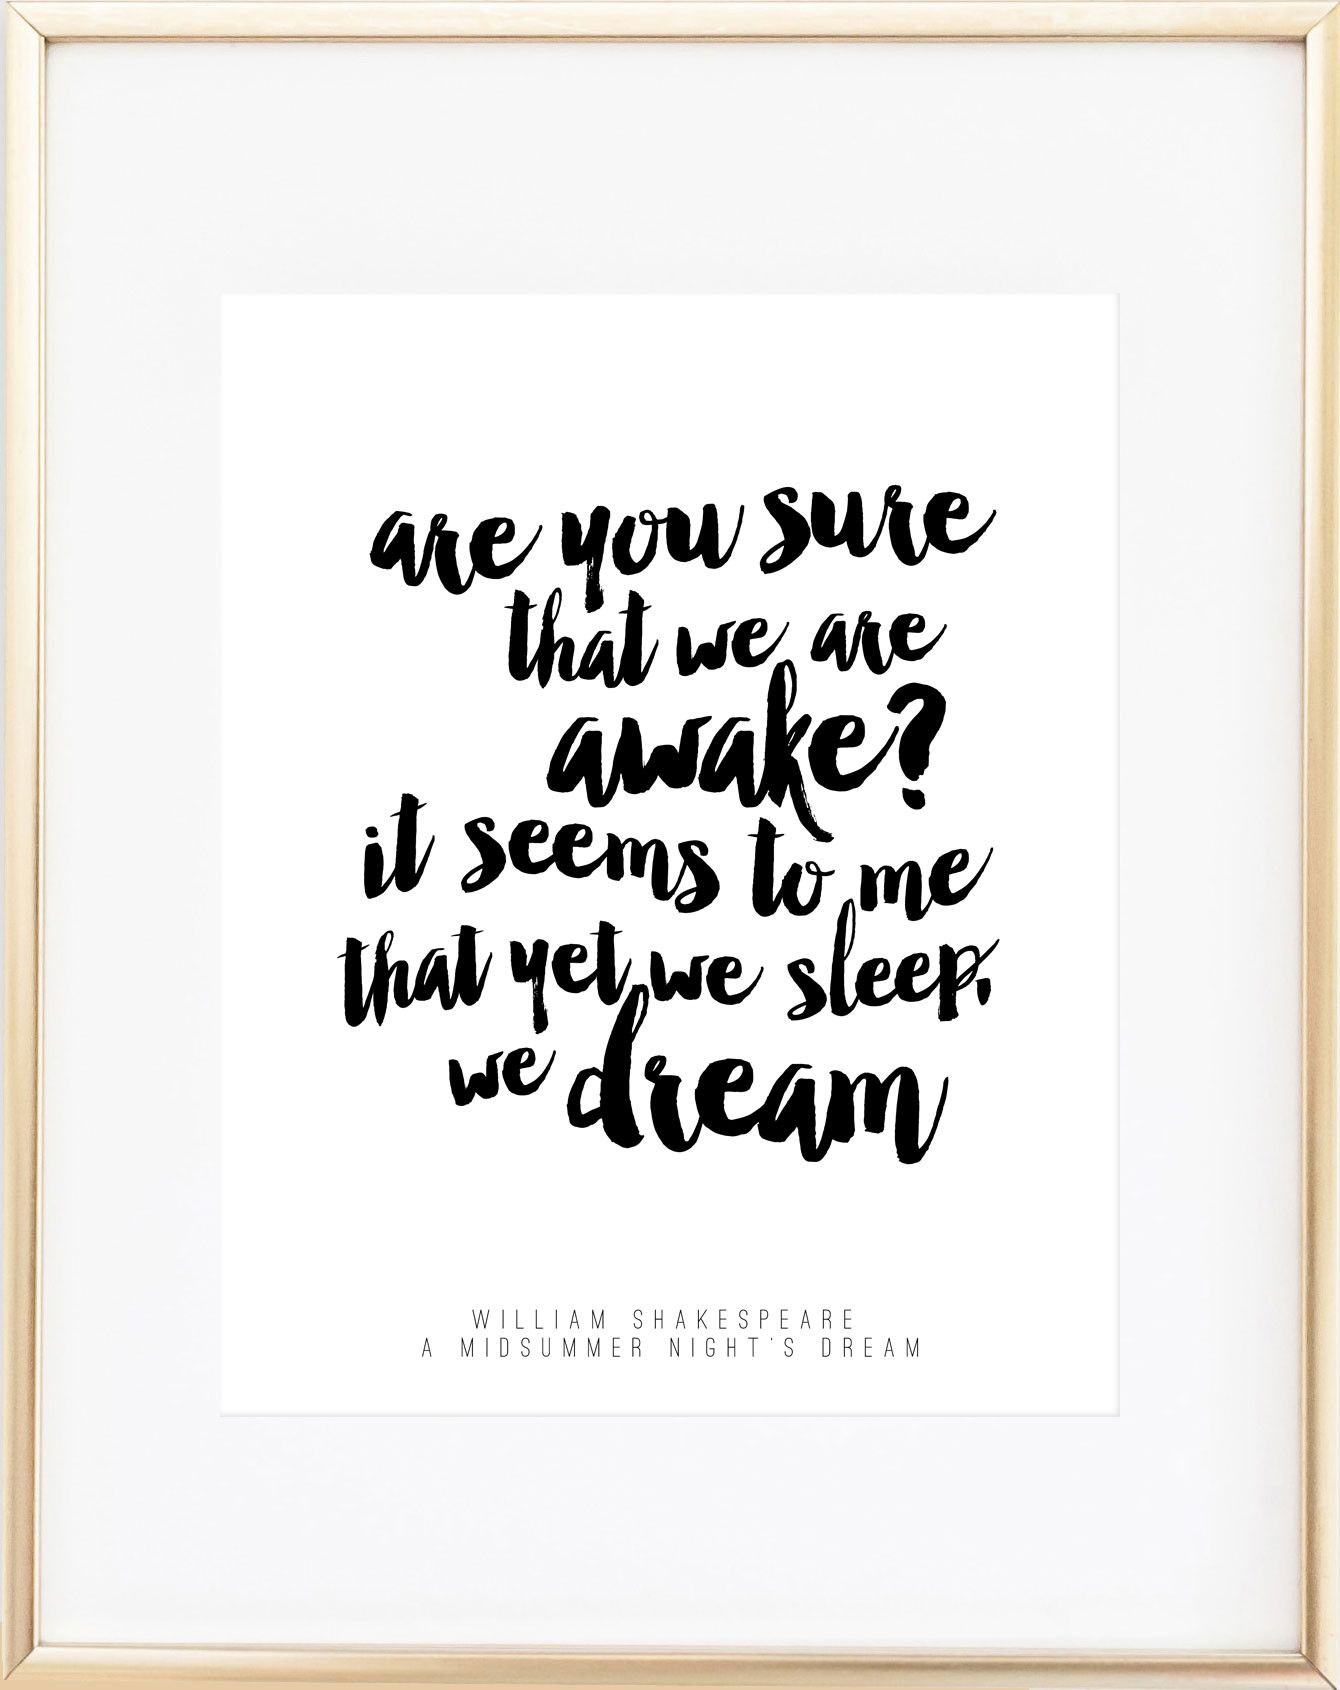 Midsummer Night's Dream Quotes Prepossessing Shakespeare Quote  A Midsummer Night's Dream  Pinterest